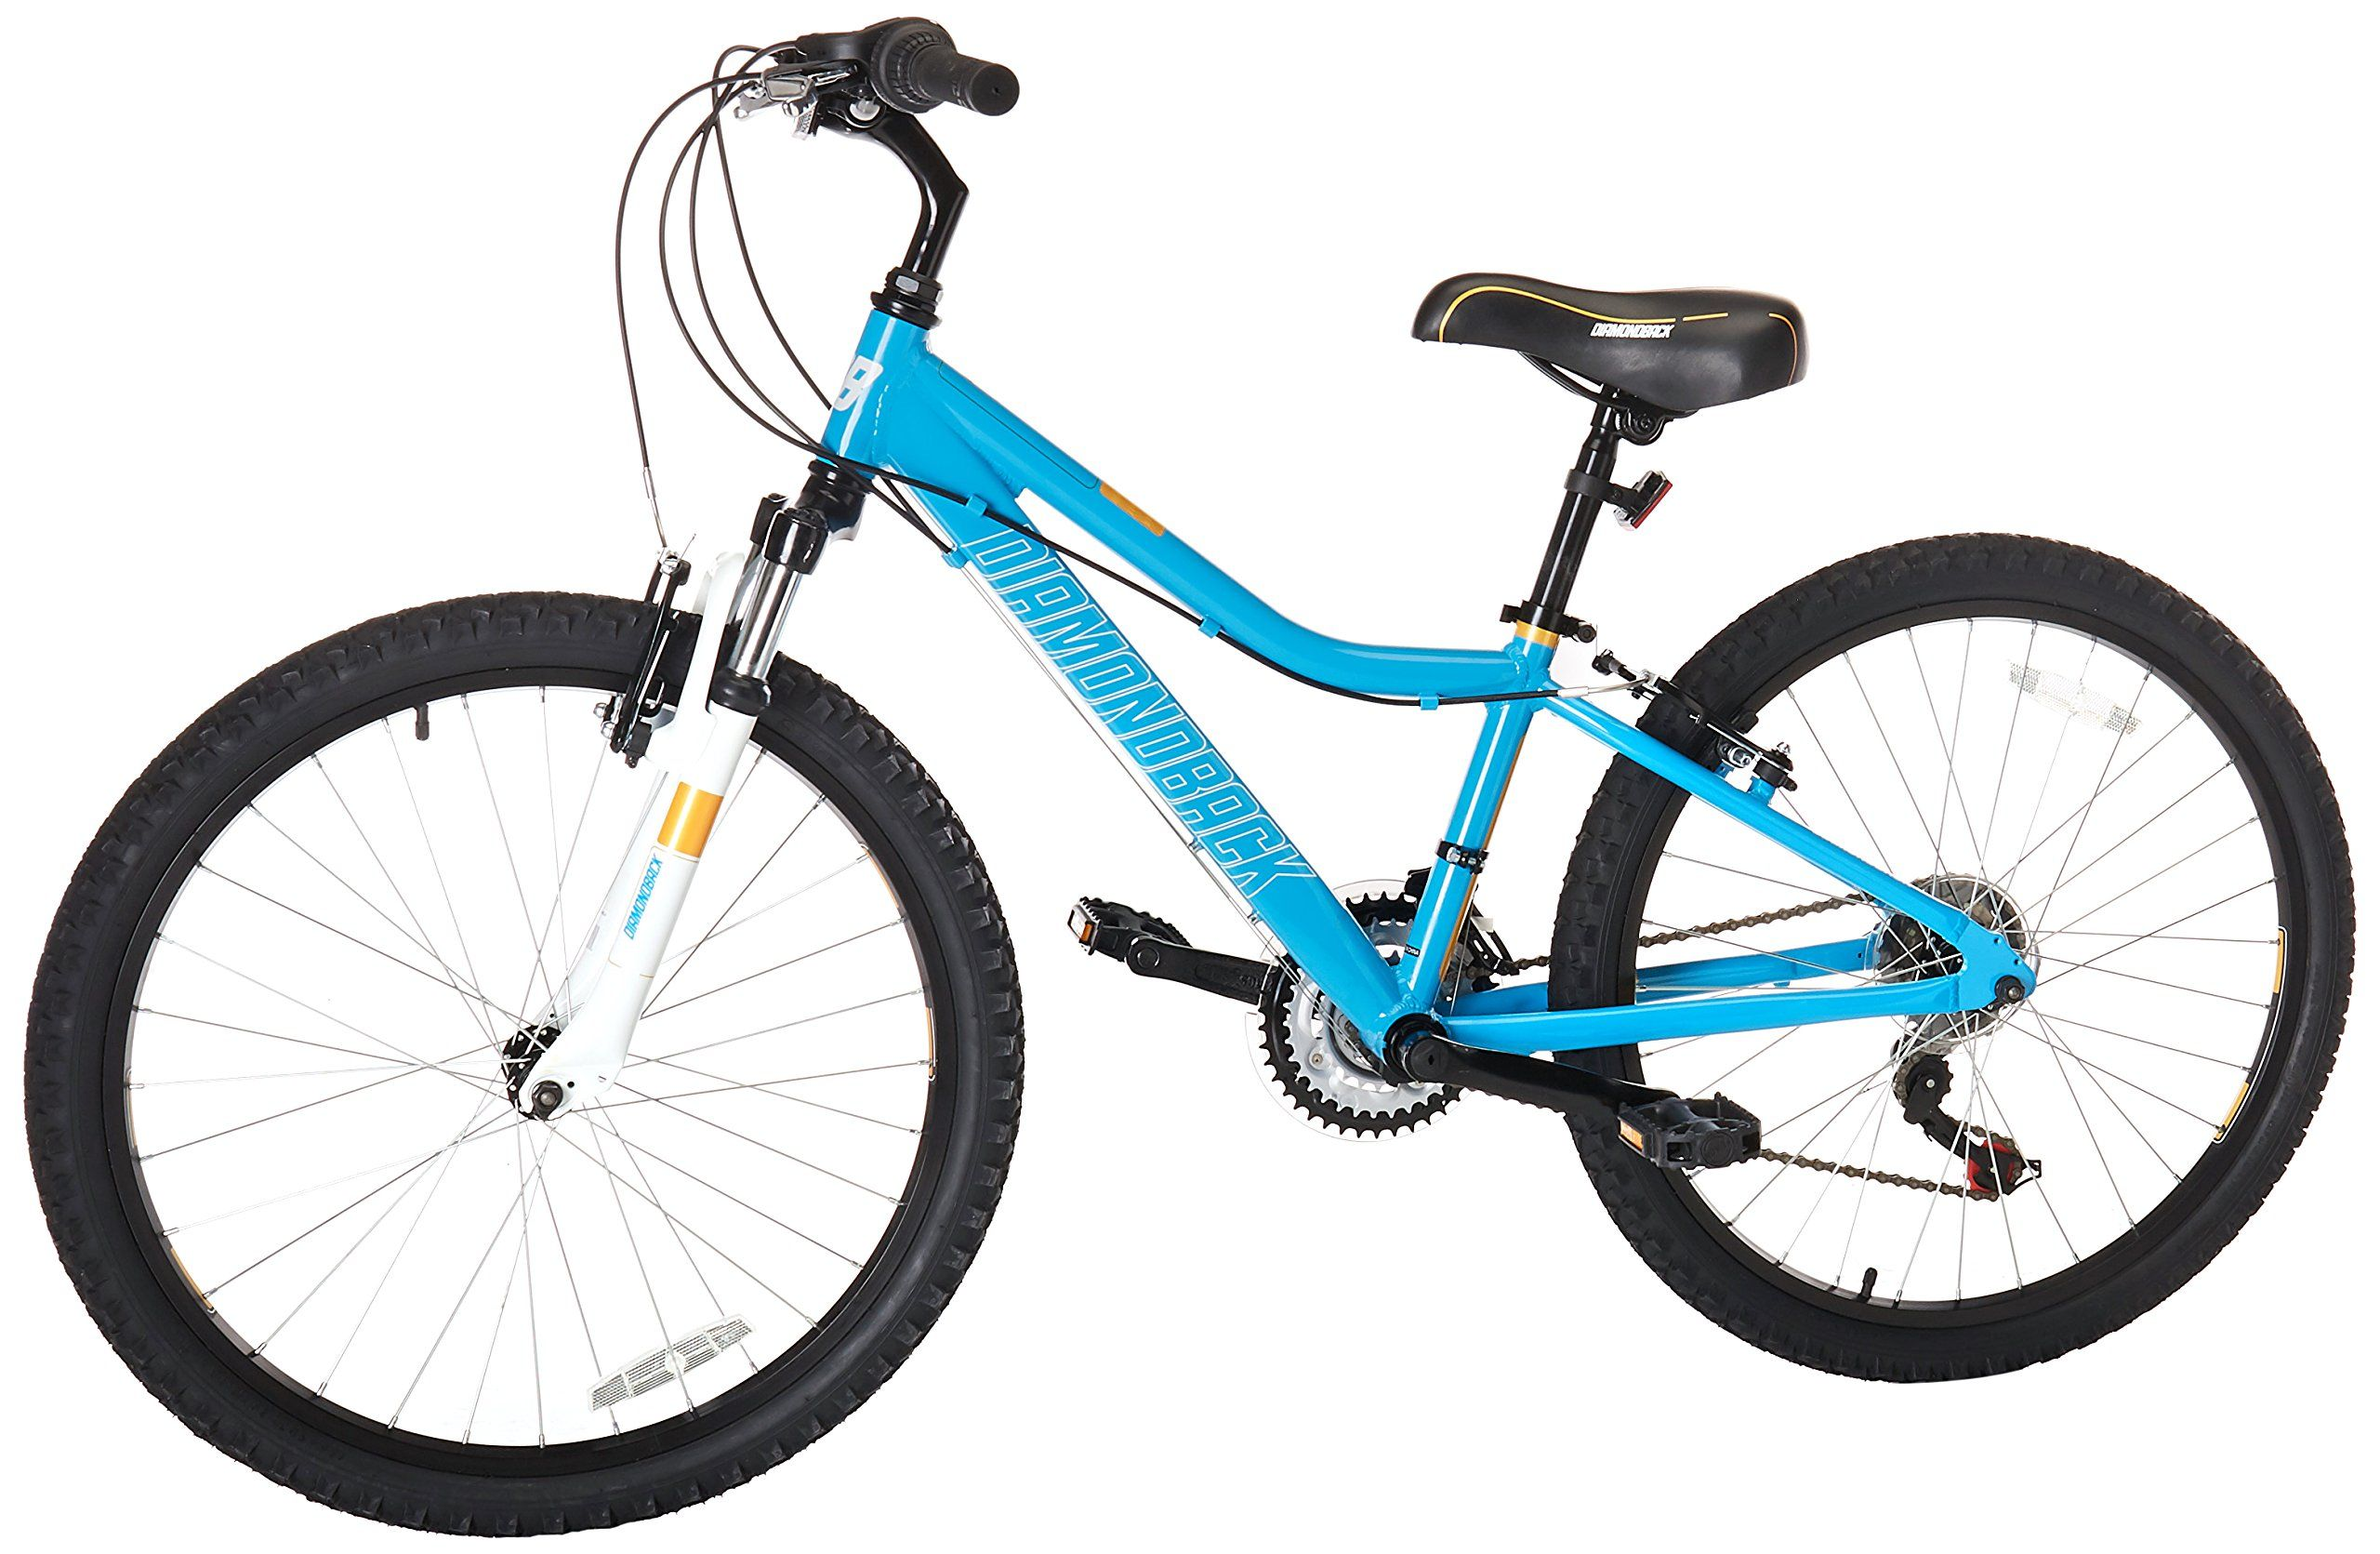 Diamondback Bicycles Lustre 24 Kids Mountain Bike 24 Wheels Blue Read More Reviews Of The Product By Visit Kids Mountain Bikes Diamondback Bicycles Bicycle